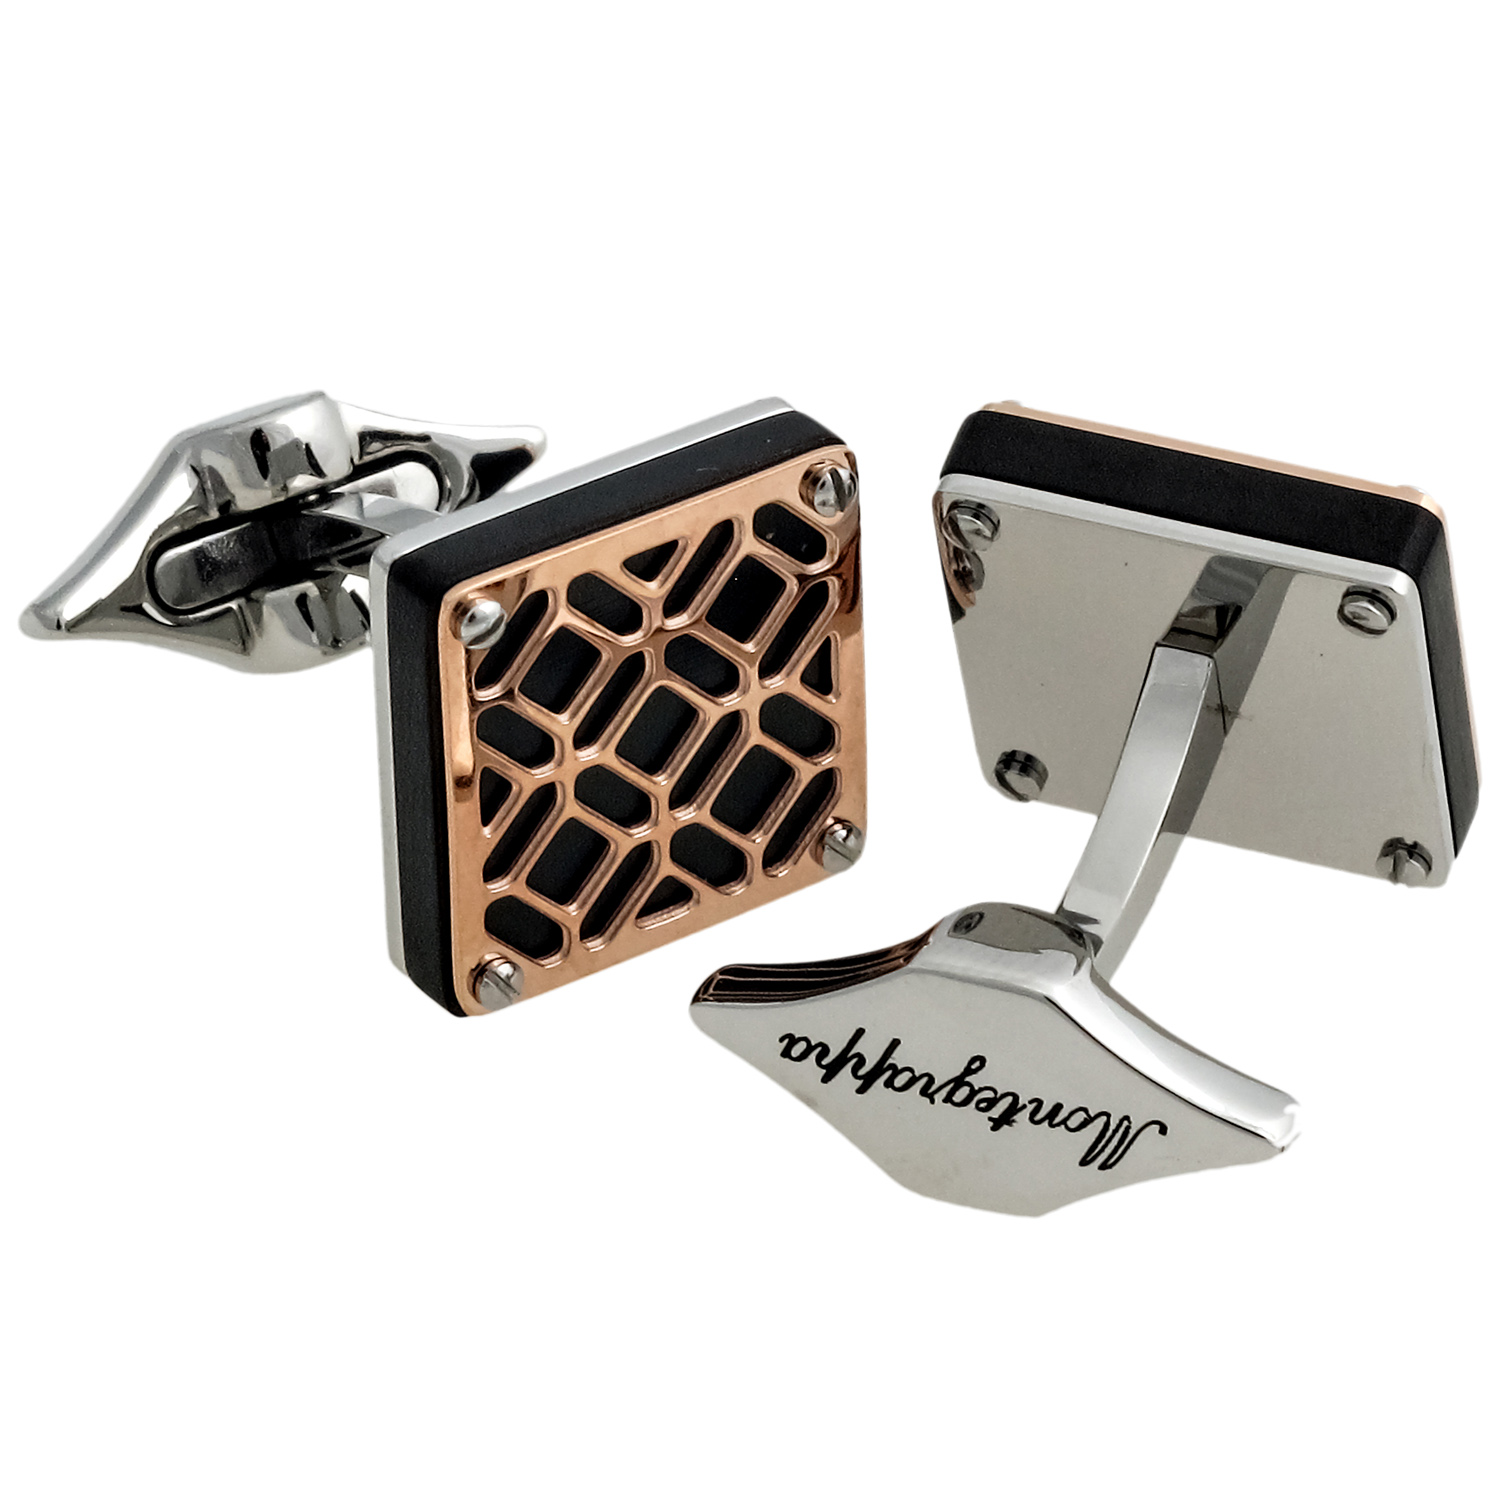 Filigree 14K Rose Gold PVD Plated Brass Cufflinks IDOMCLRS